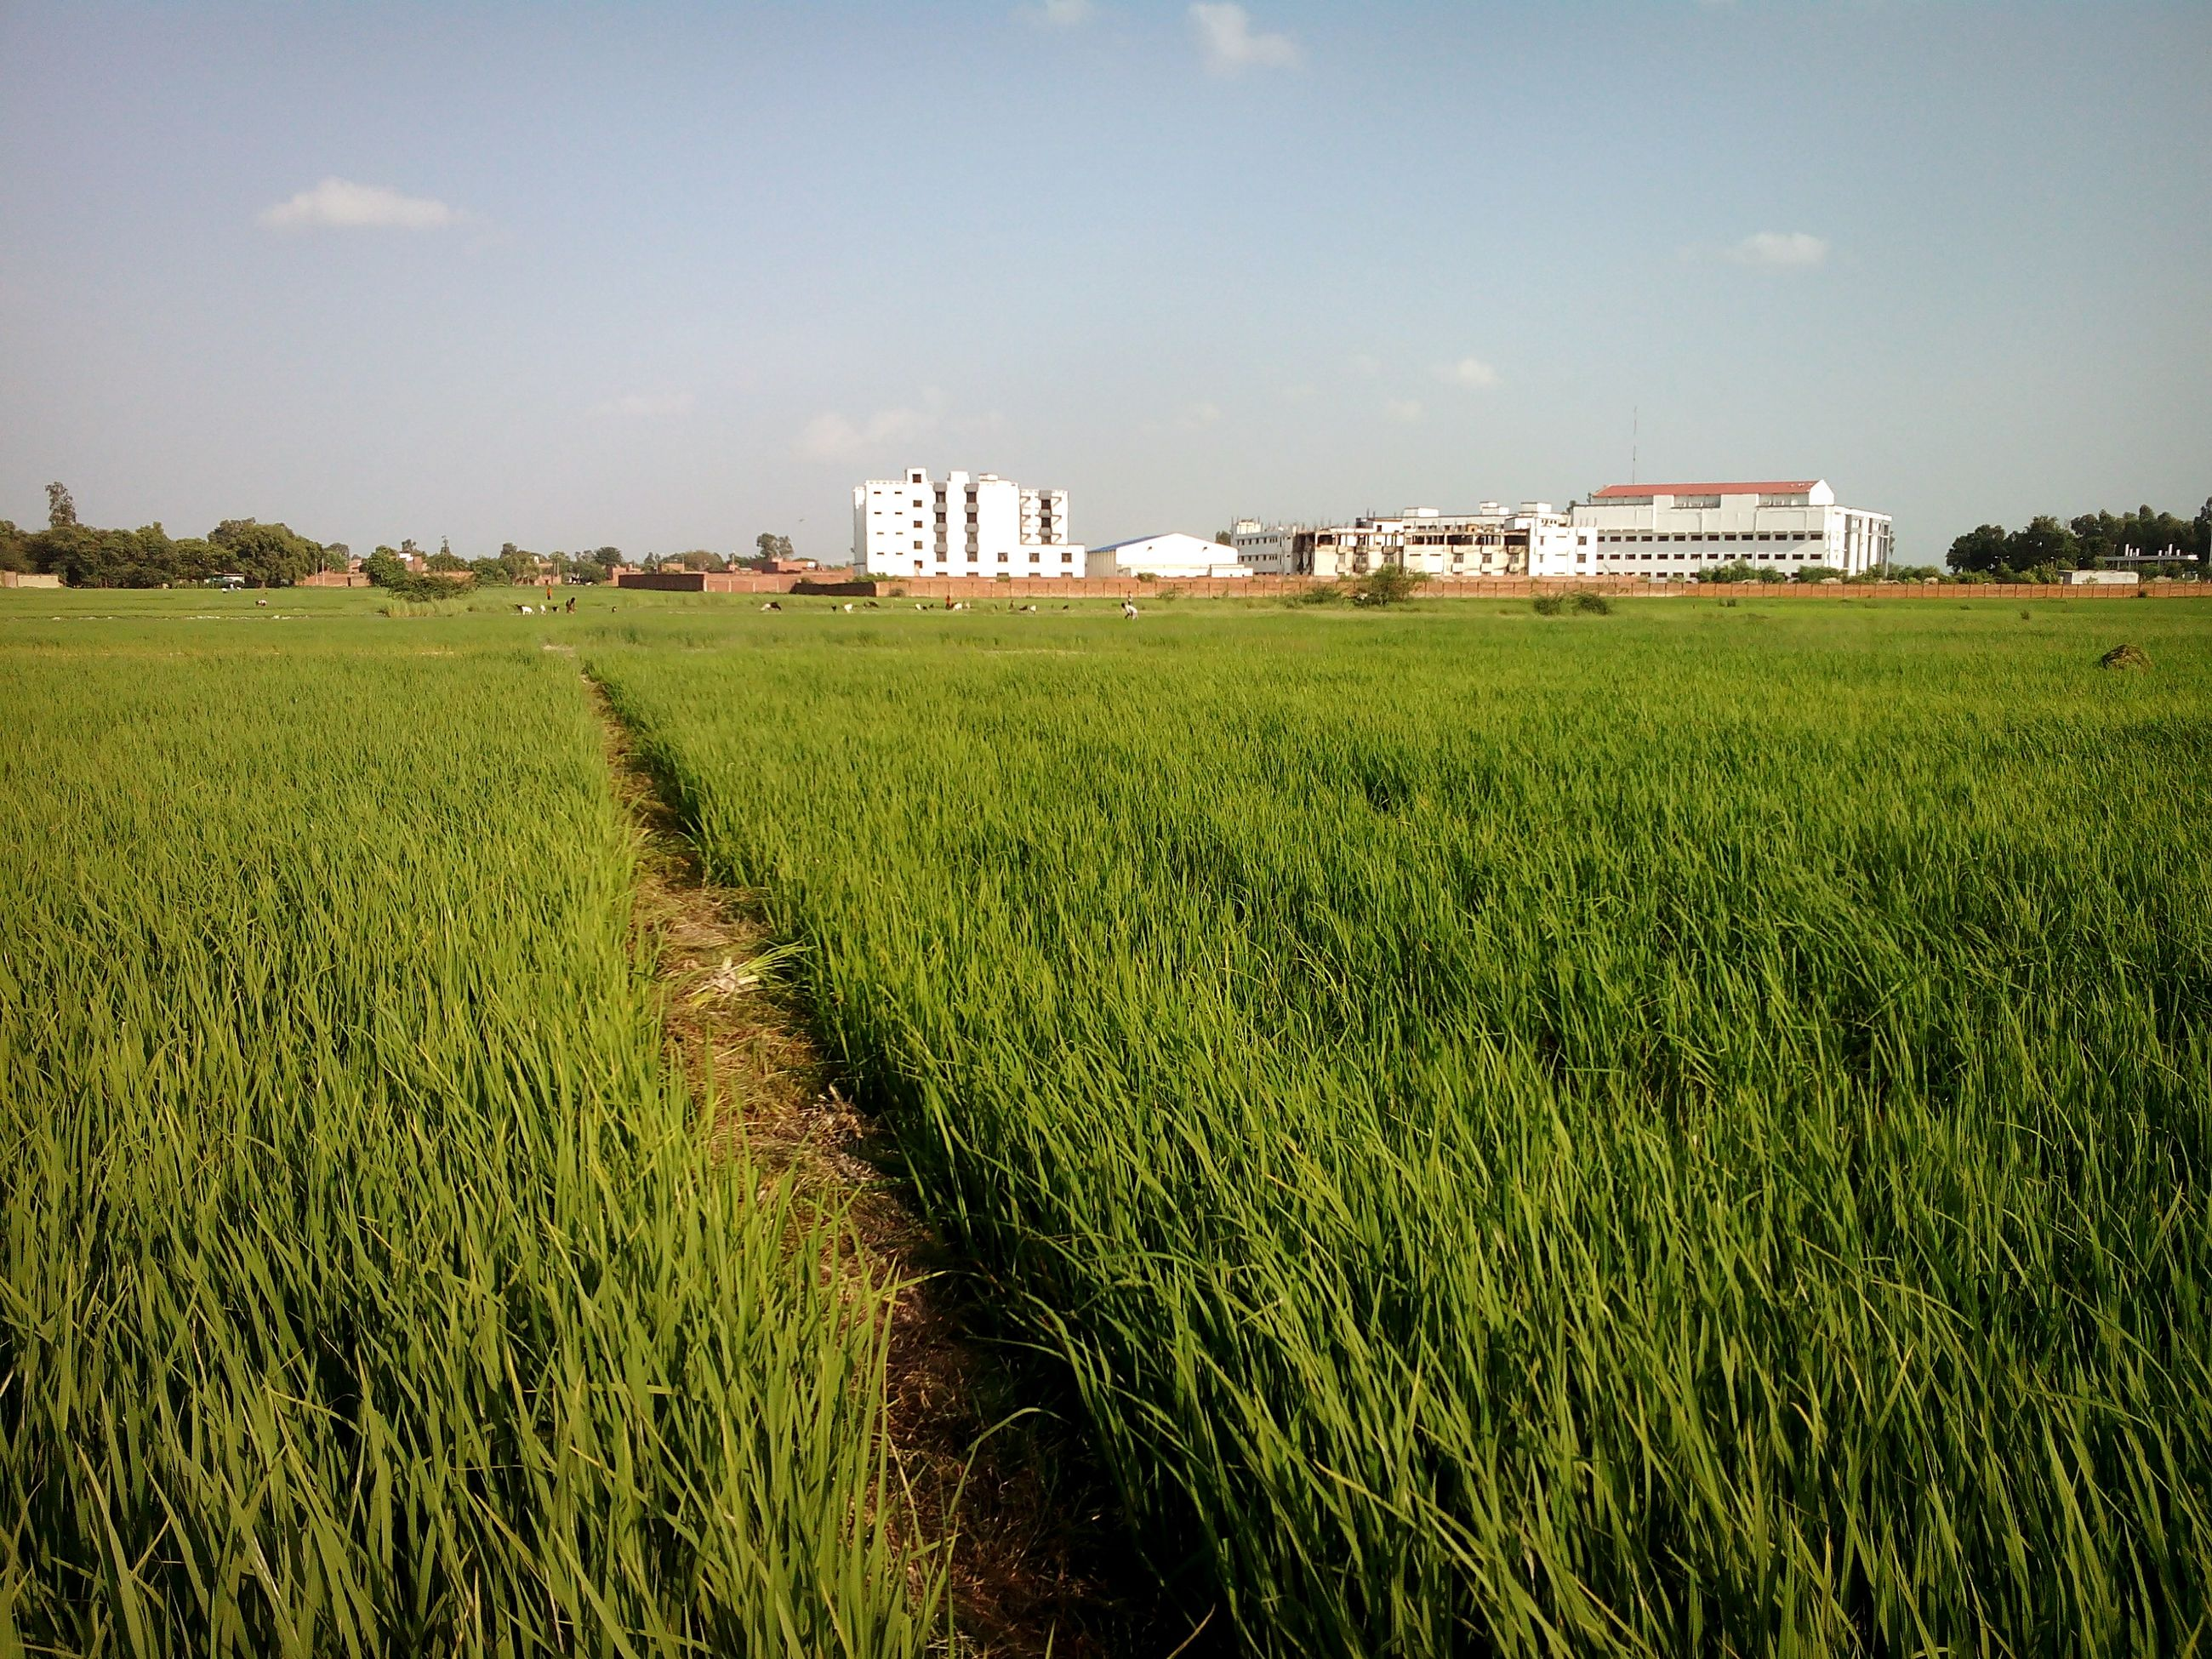 field, grass, agriculture, rural scene, green color, farm, building exterior, growth, architecture, landscape, built structure, crop, sky, grassy, cultivated land, nature, tranquility, tranquil scene, beauty in nature, scenics